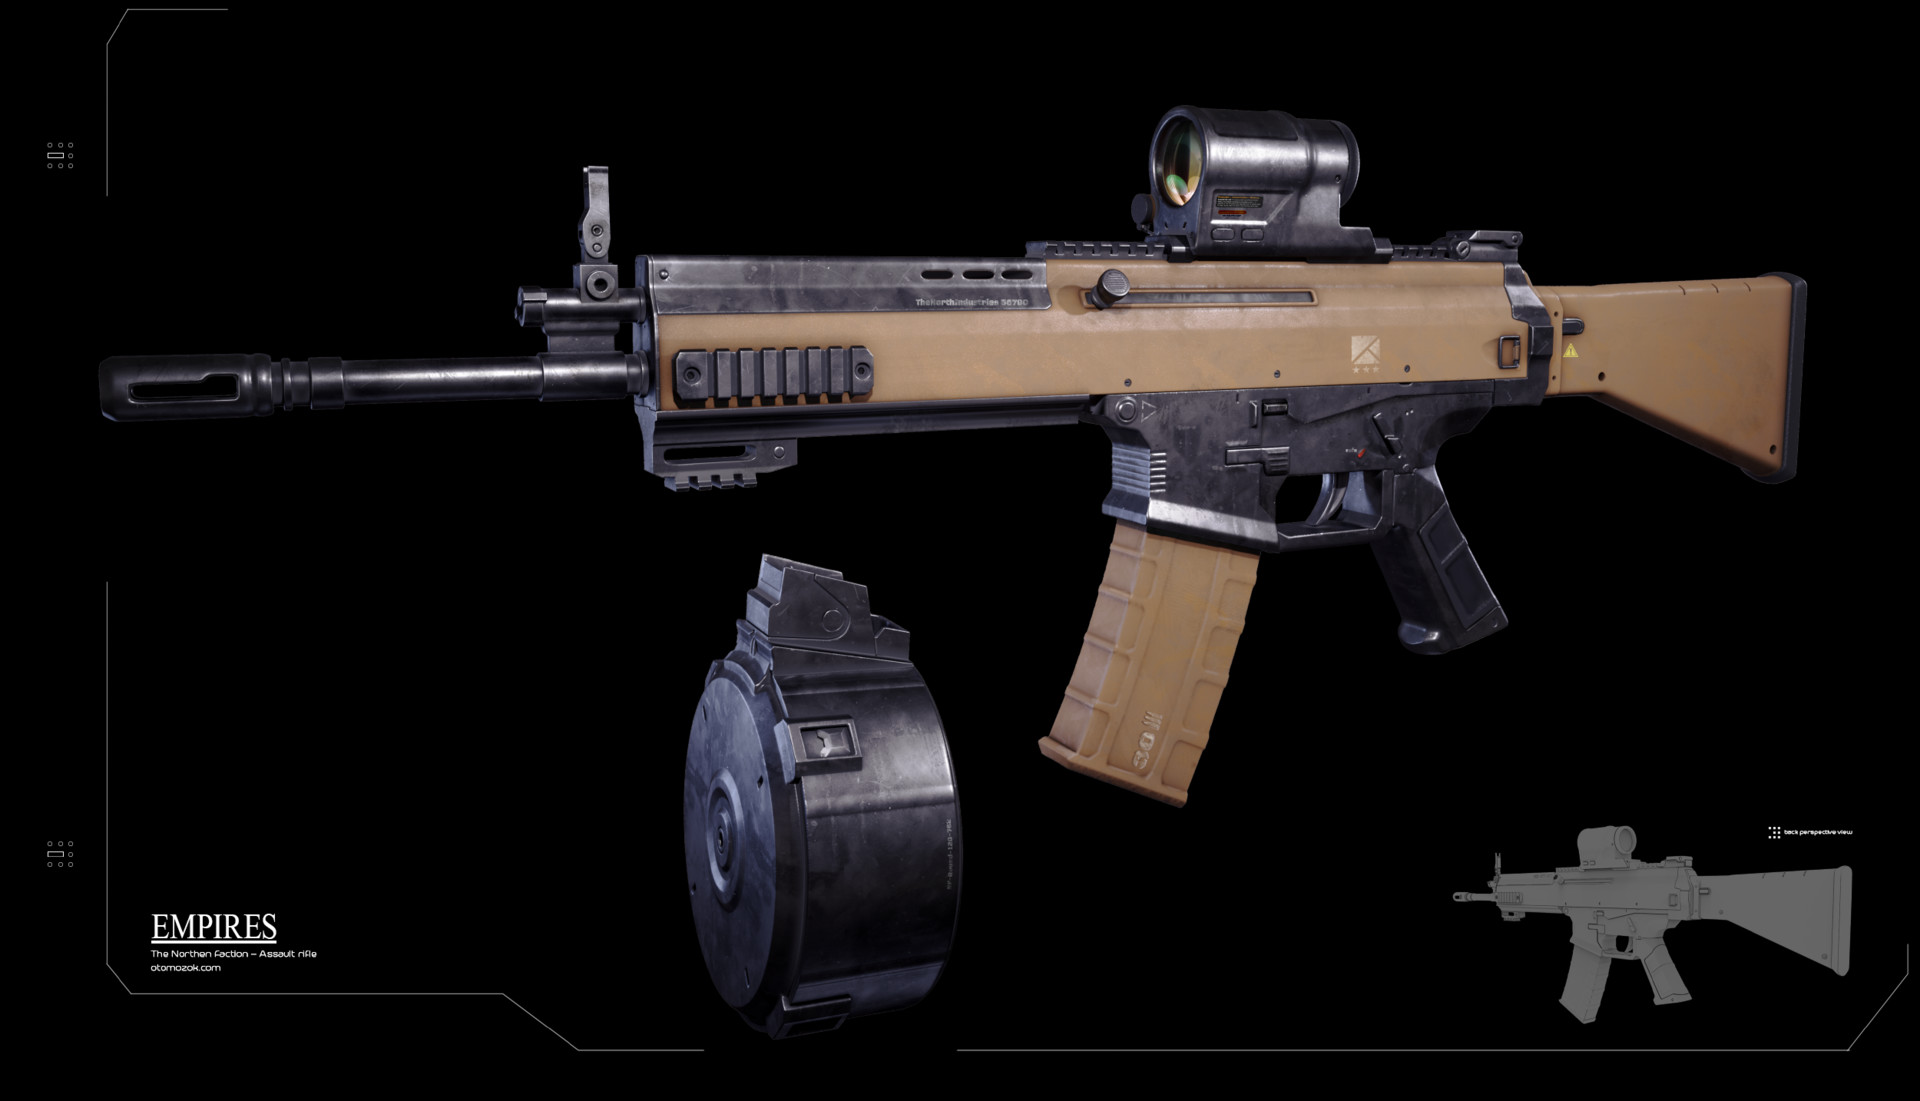 Arthur gurin nfaction rifle